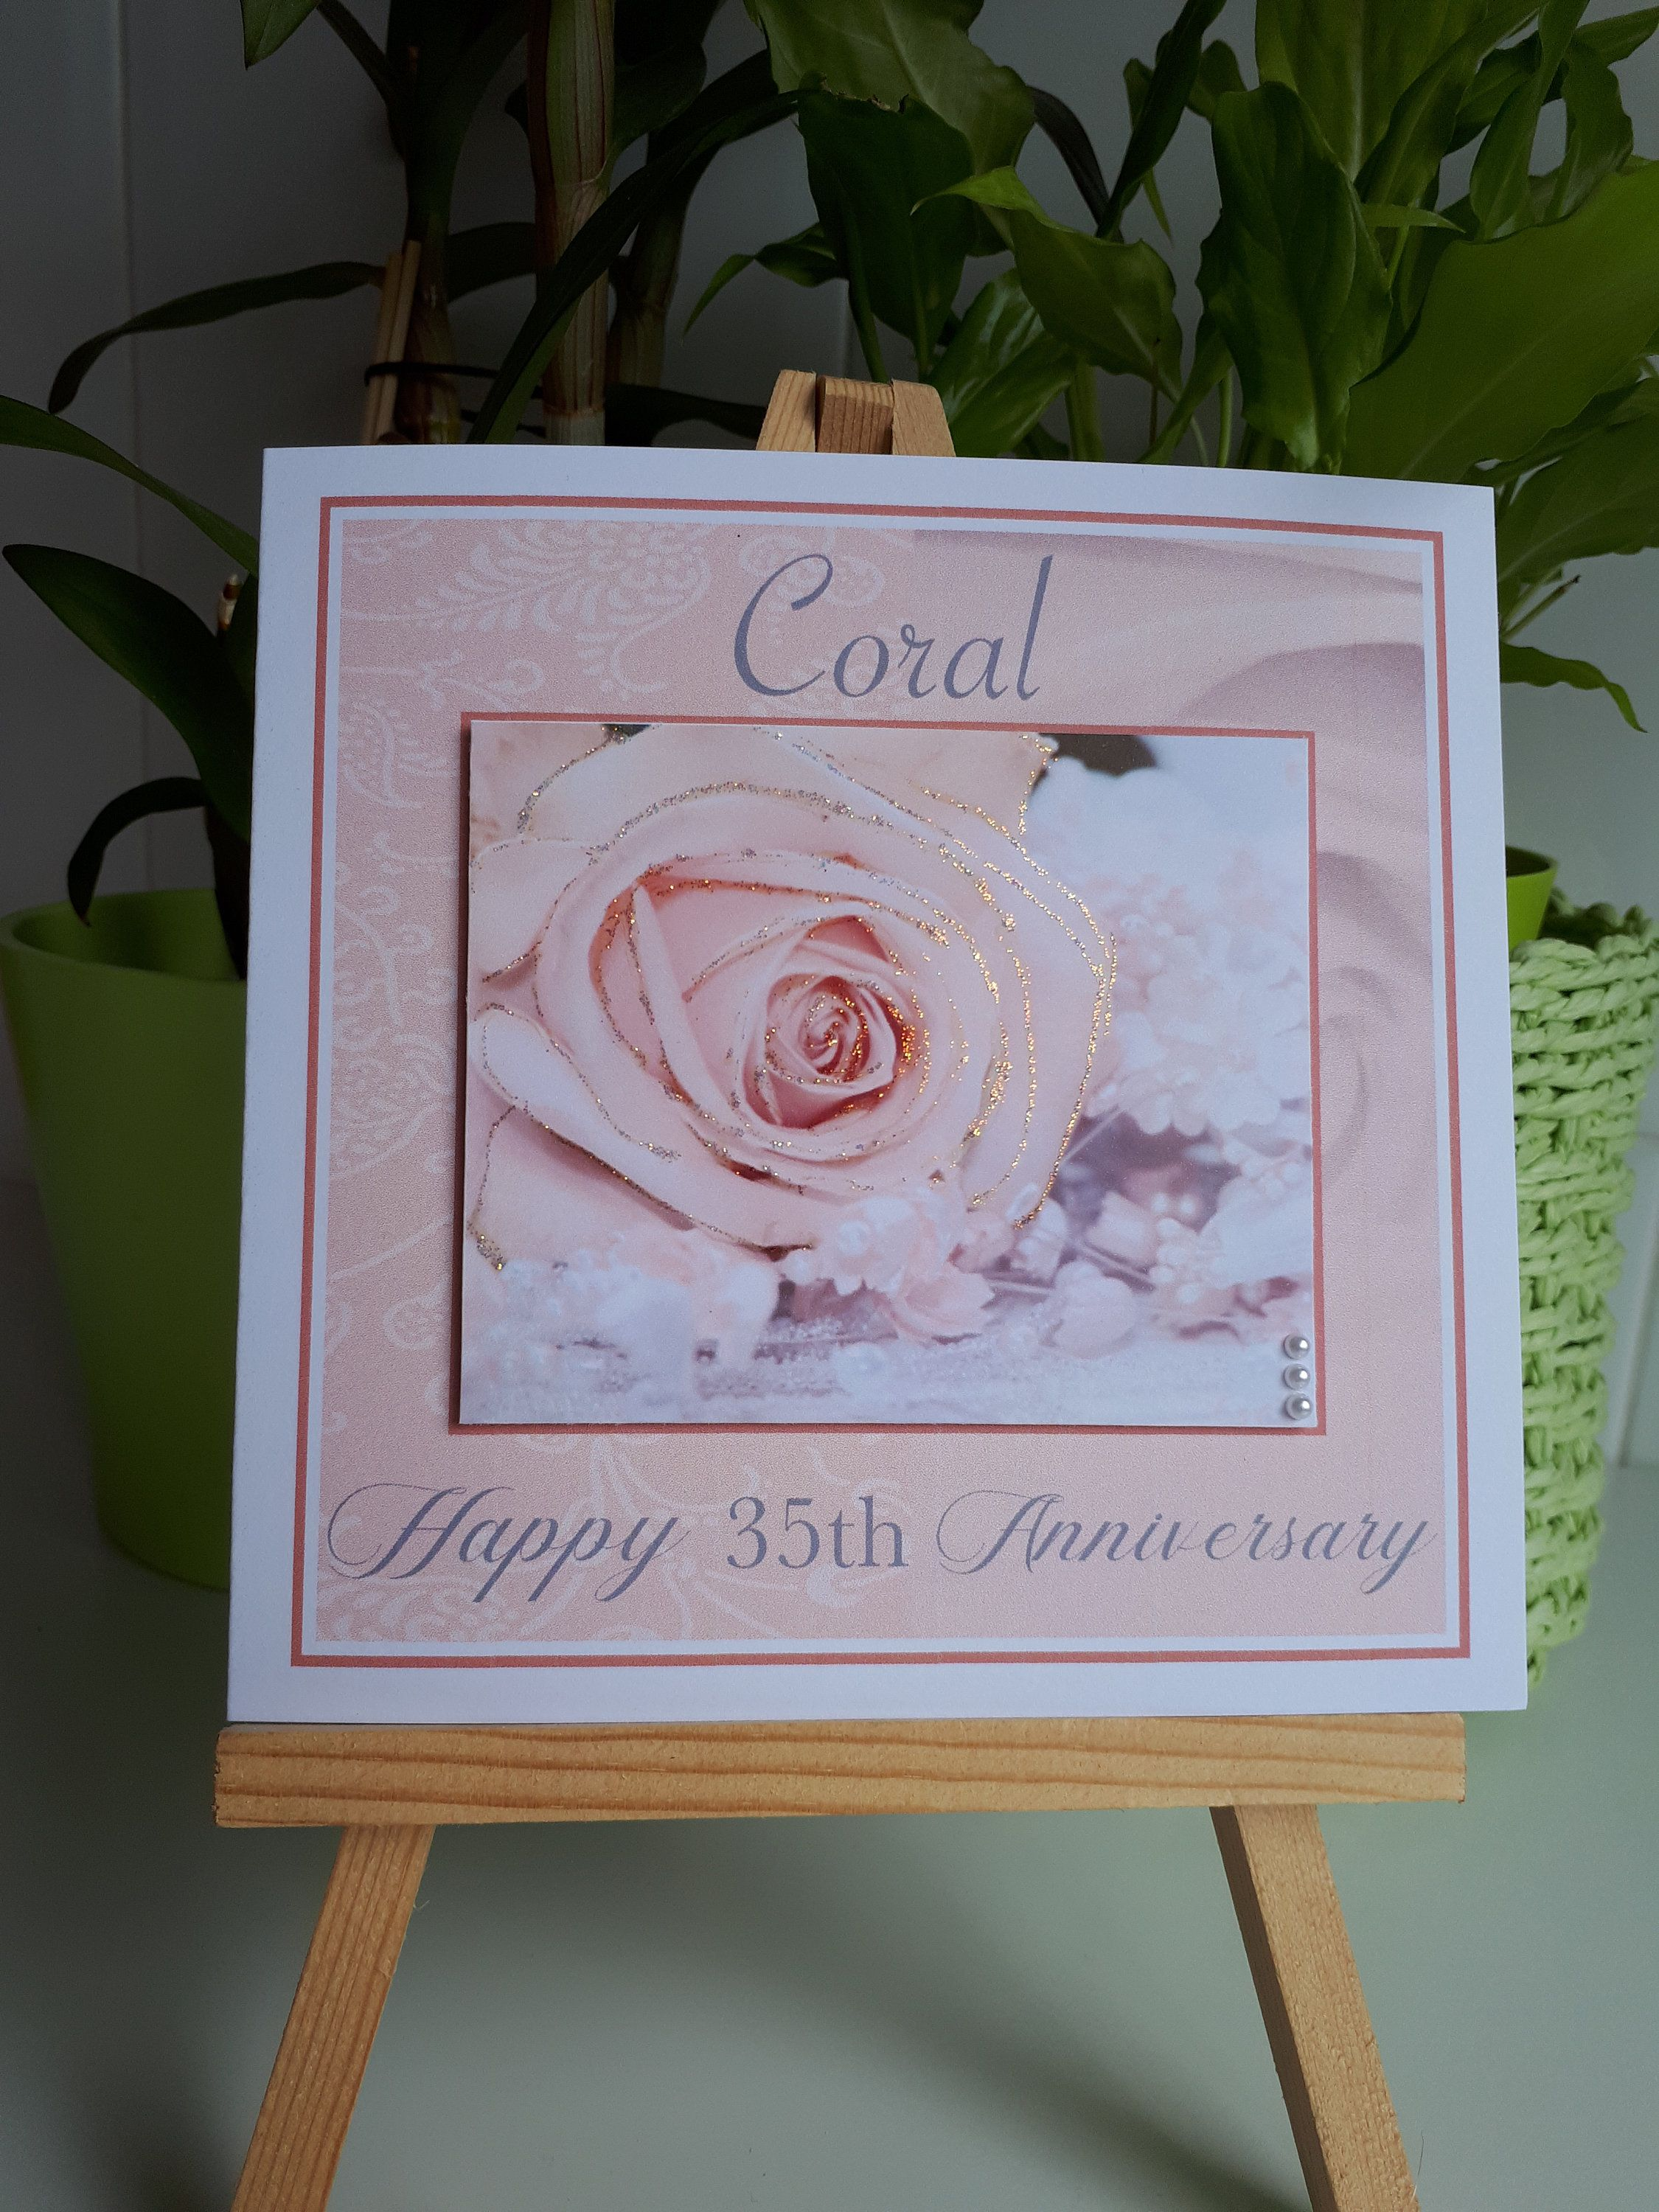 35th Anniversary Card Coral Wedding Card Handmade 35 Year Etsy Anniversary Cards For Husband Anniversary Cards Anniversary Cards Handmade